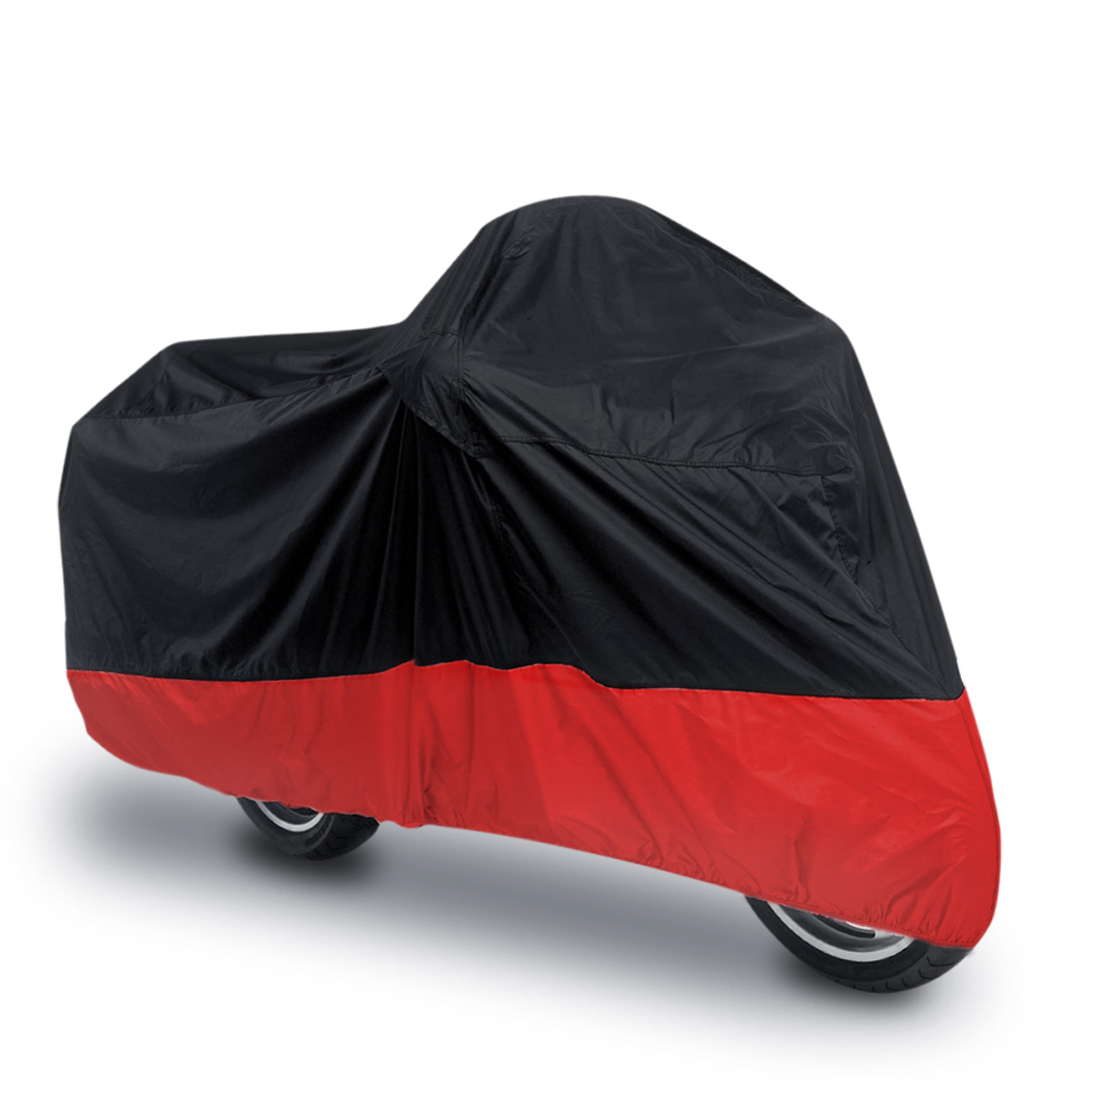 XL 180T Rain Dust Bike Motorcycle Cover Outdoor UV Snow Water Proof Black Red